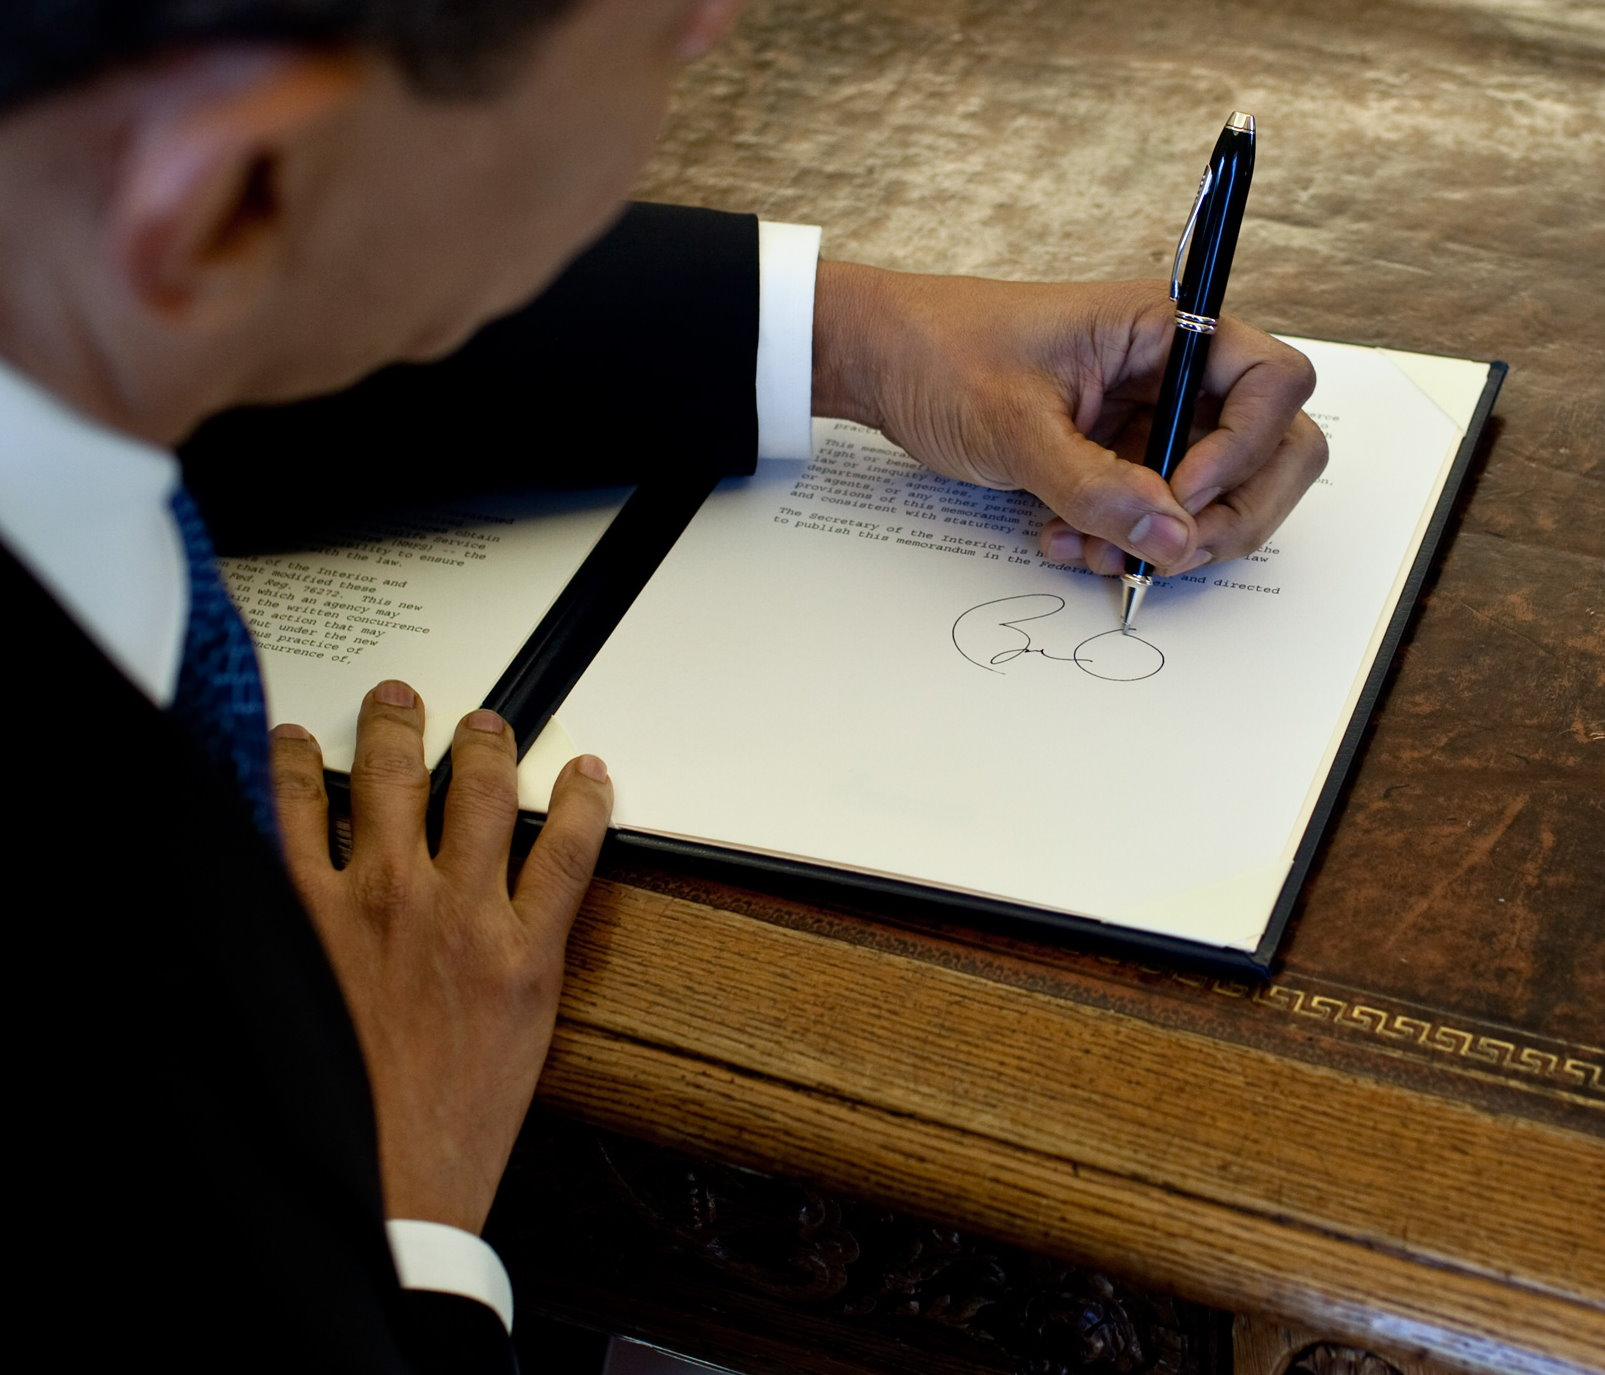 President Barack Obama signing with left hand